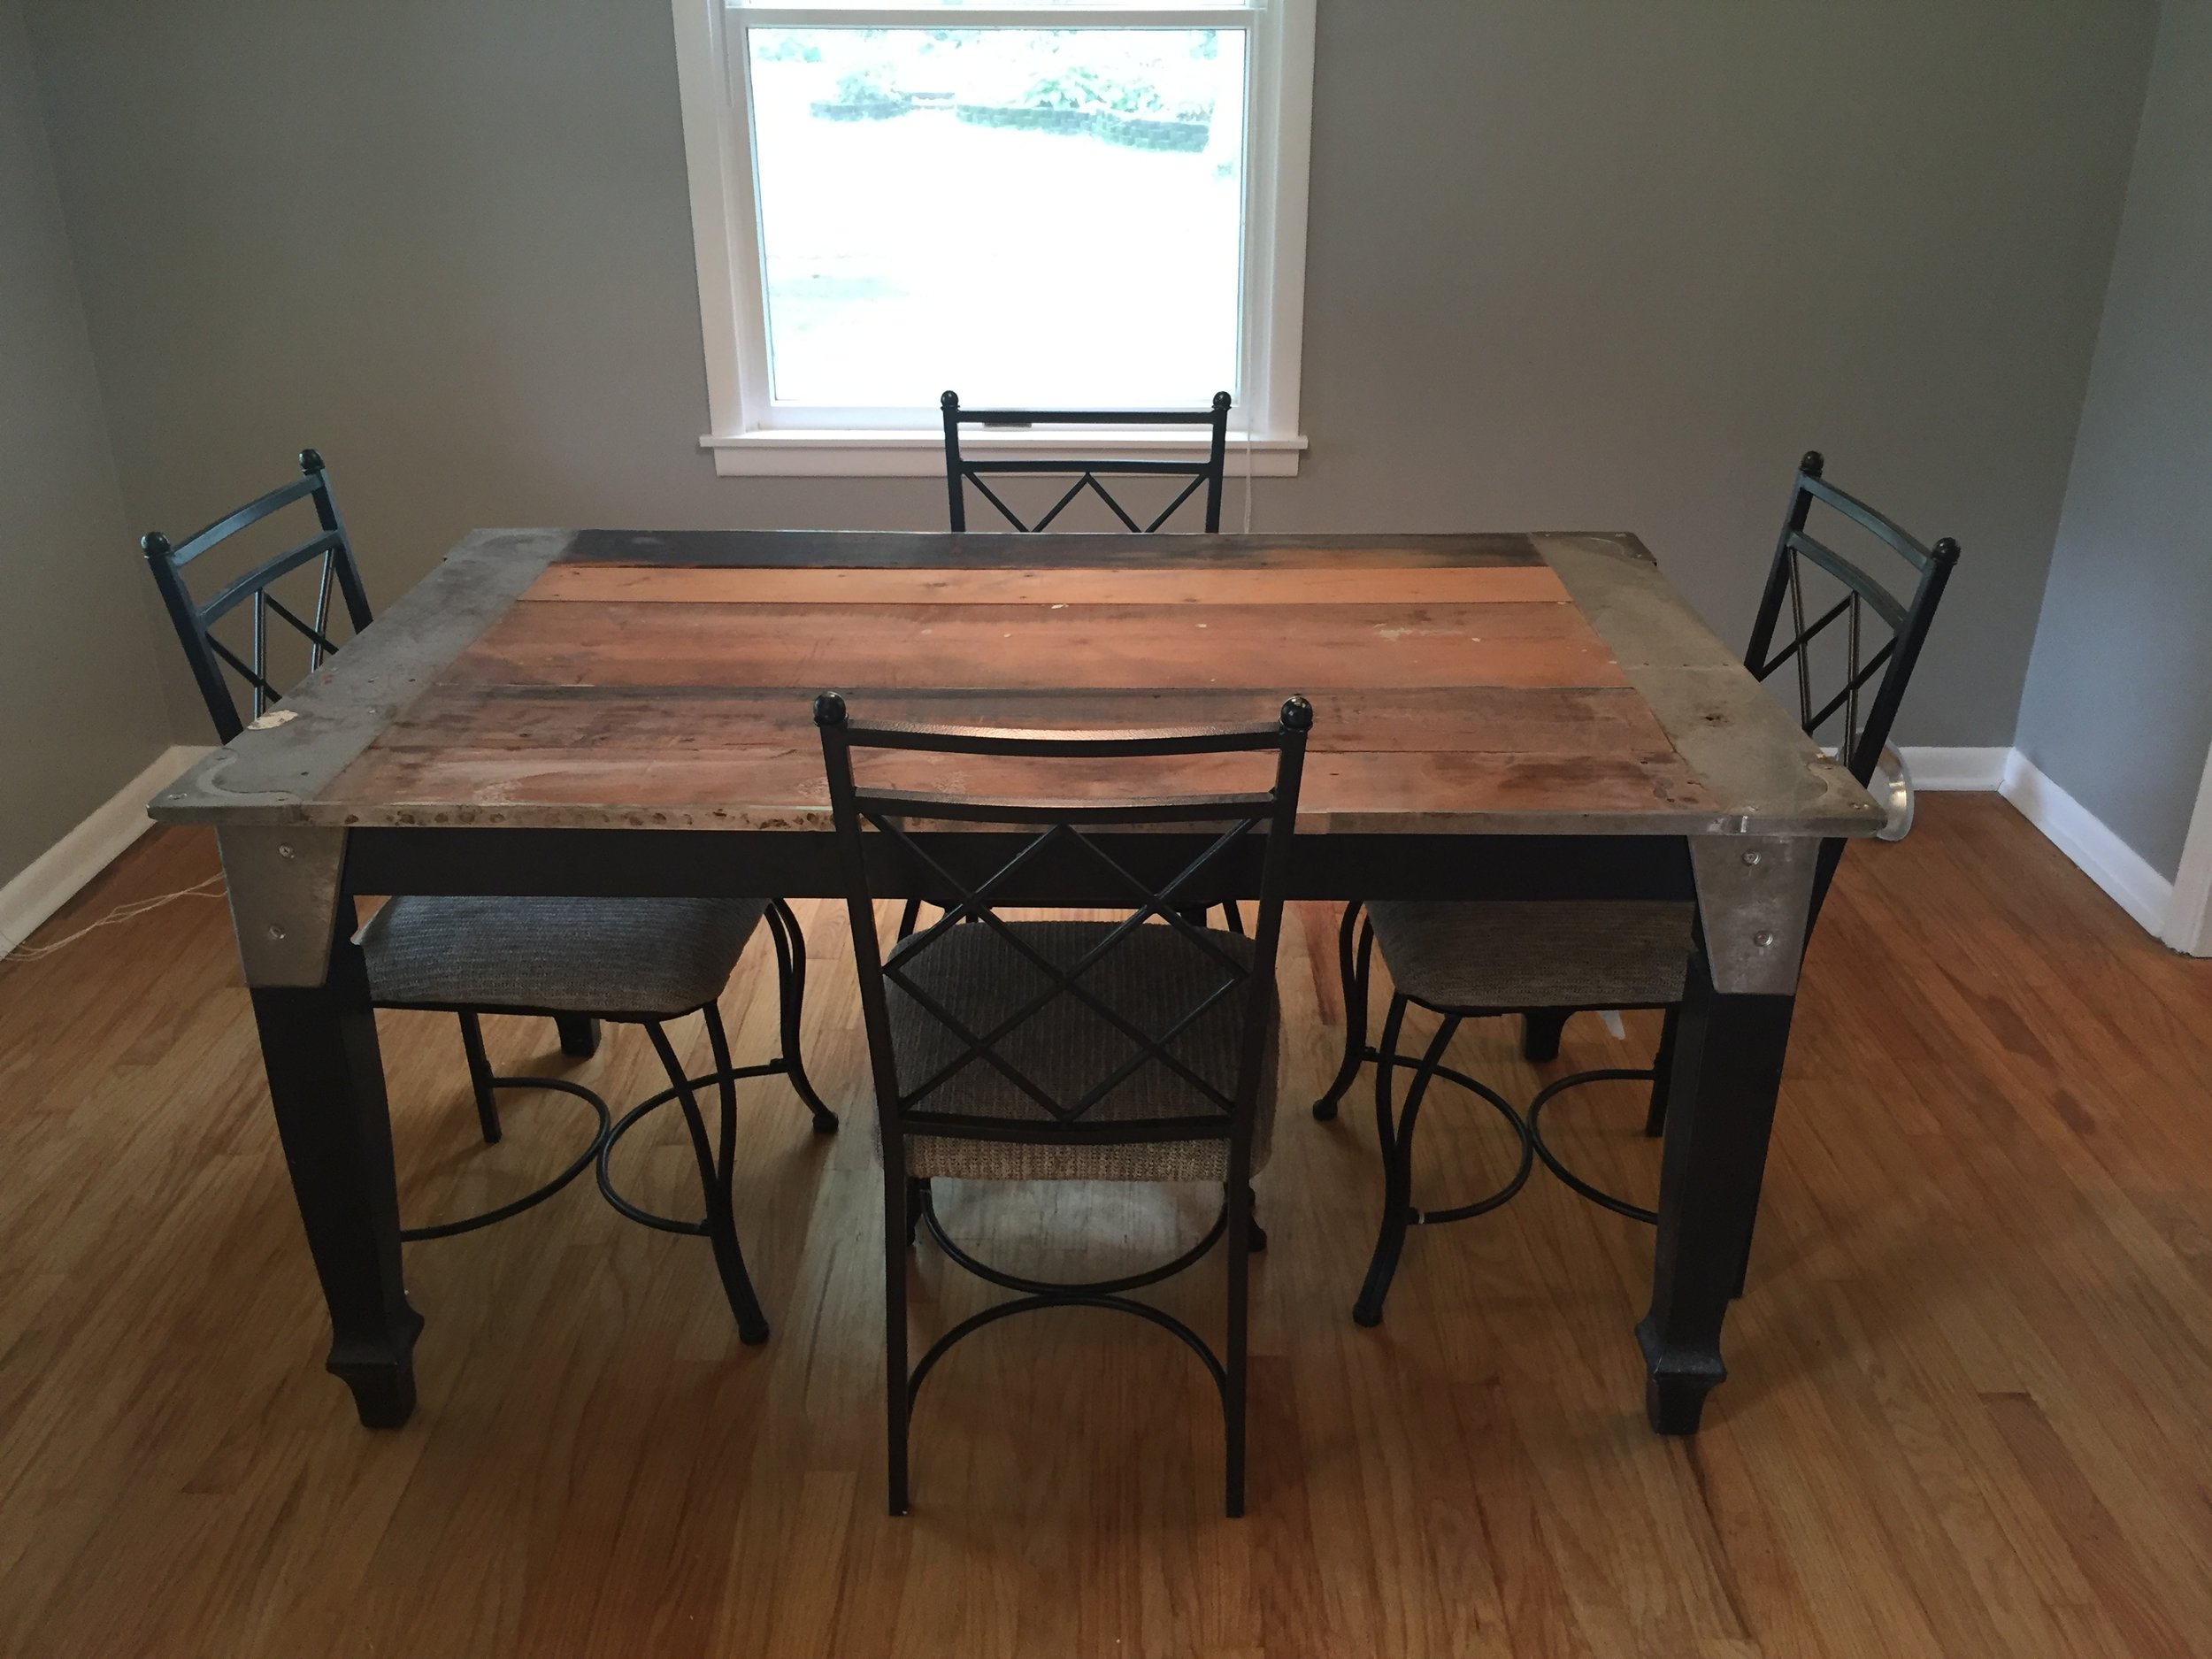 The dining room table Aaron made me. He even engineered a way for it to have an extension! He salvaged trim details from our old pool table in the basement of  old house  and used them on the table. I love it madly.